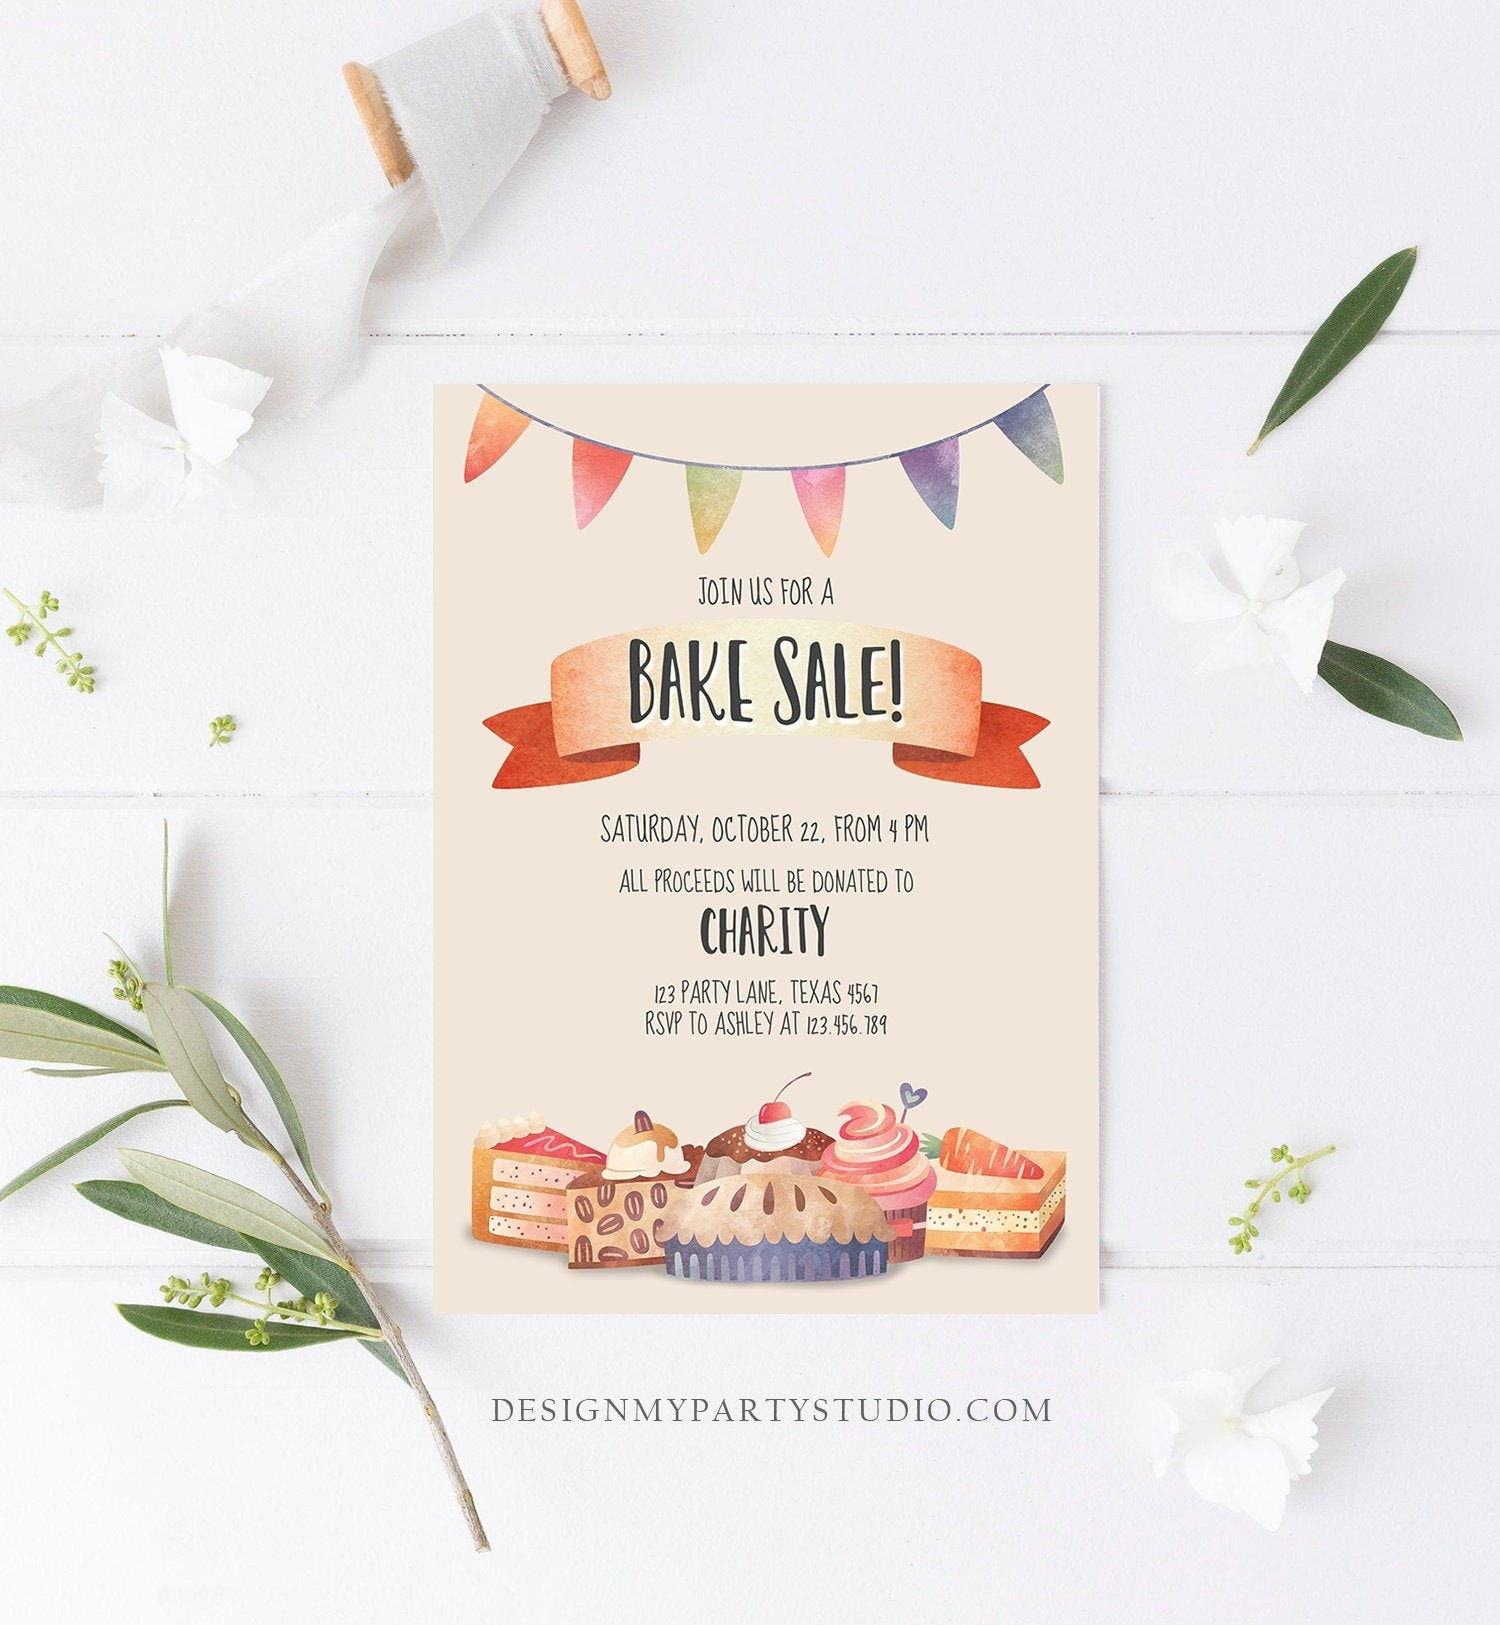 Editable Bake Sale Party Festival Invitation Fundraiser School Church Flyer Kitchen Cake Cookie Download Corjl Template Printable 0258